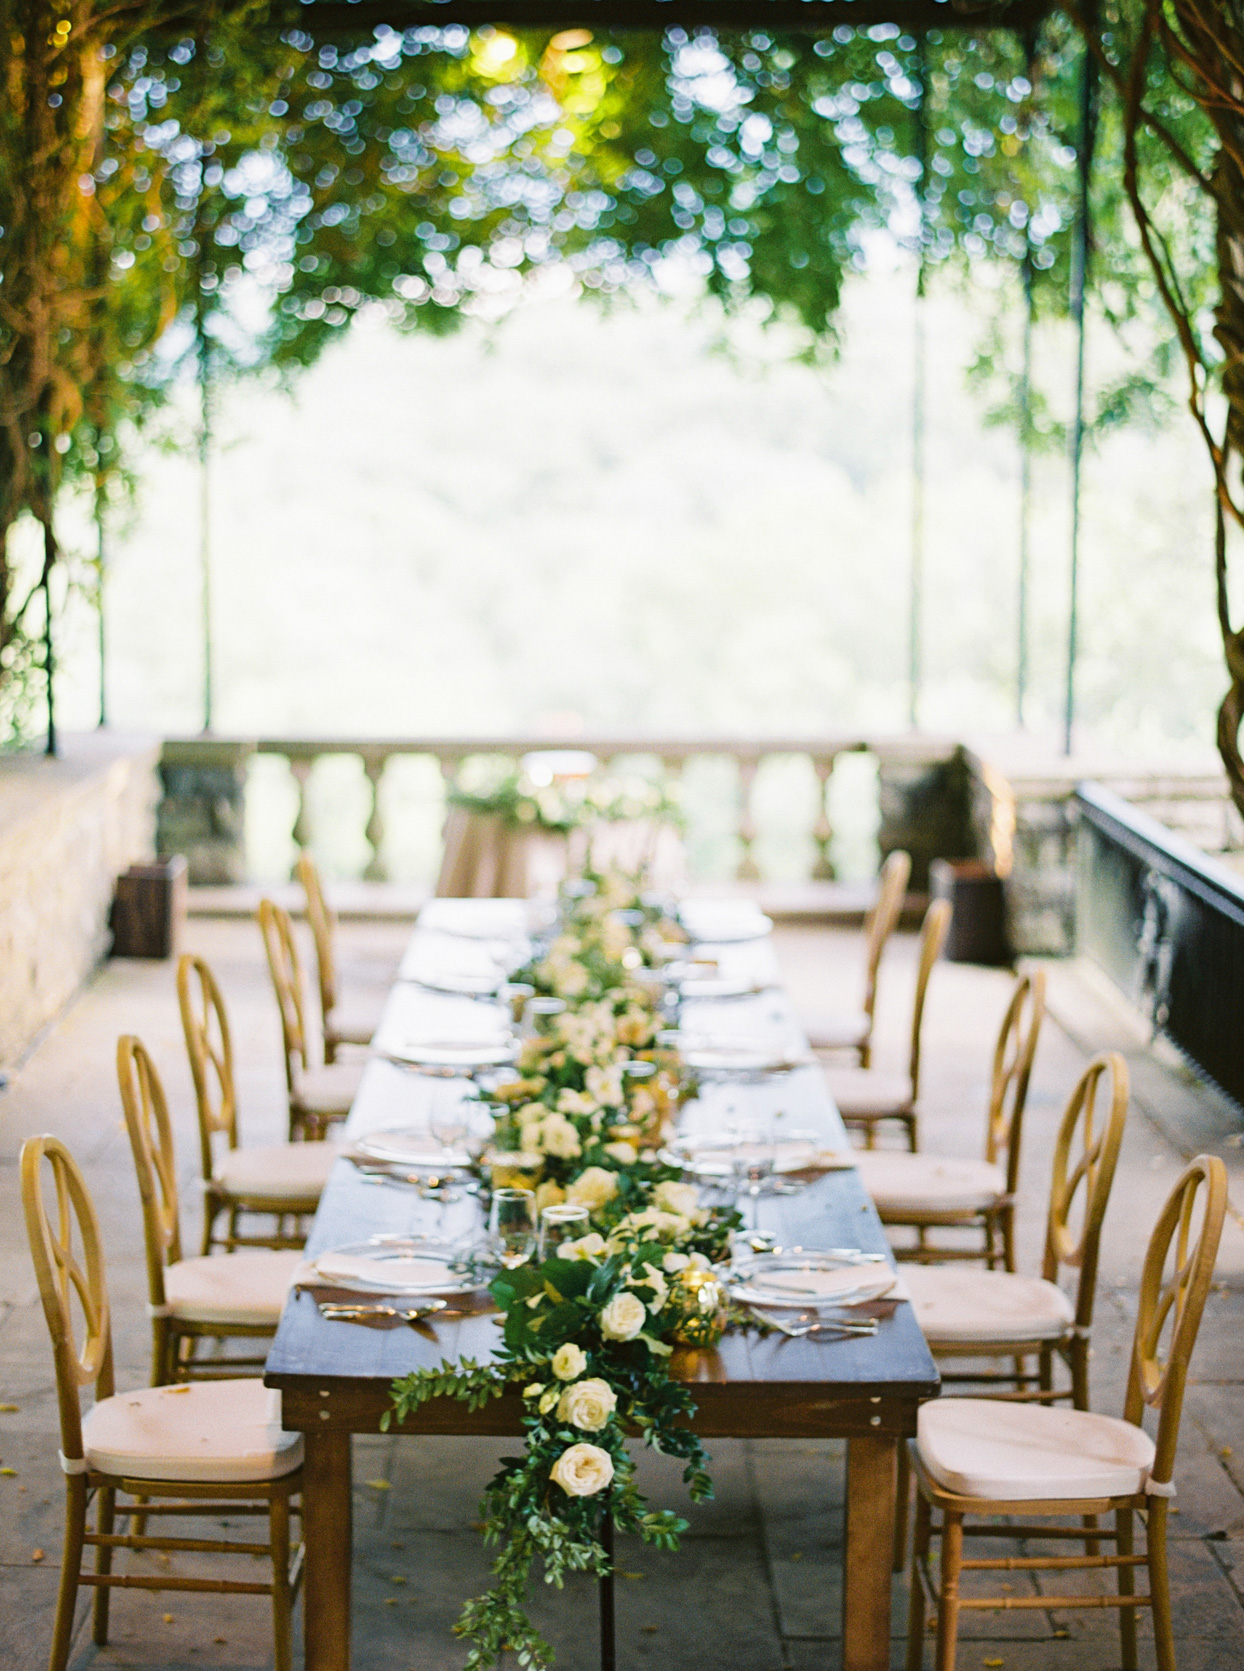 wedding reception dinner table with garland and flowers